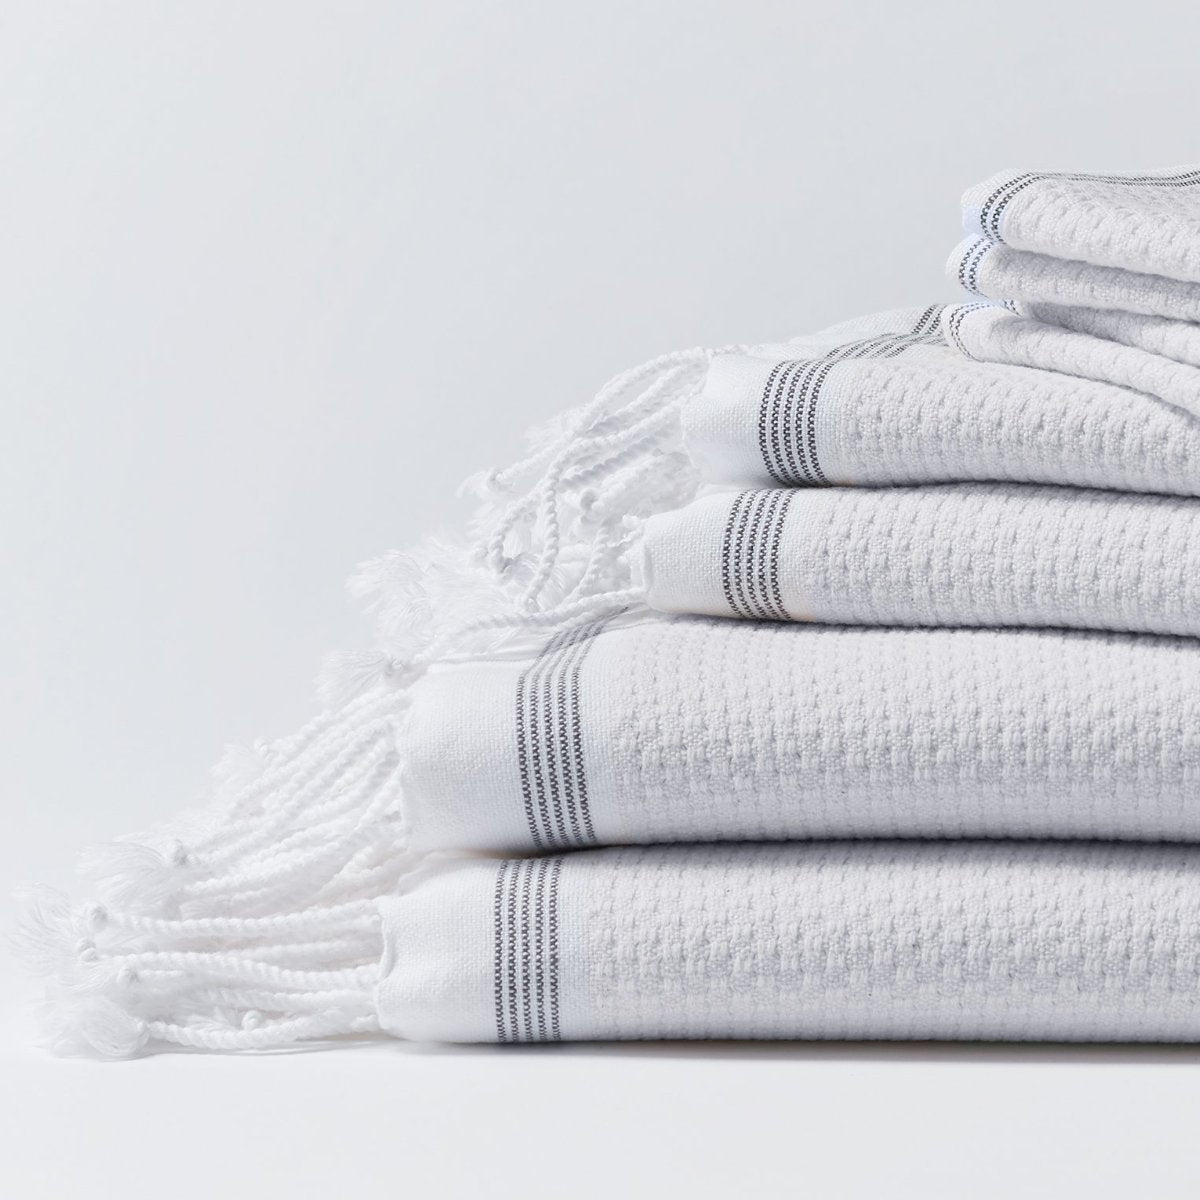 Mediterranean Organic Towel Set - White (6 pc)